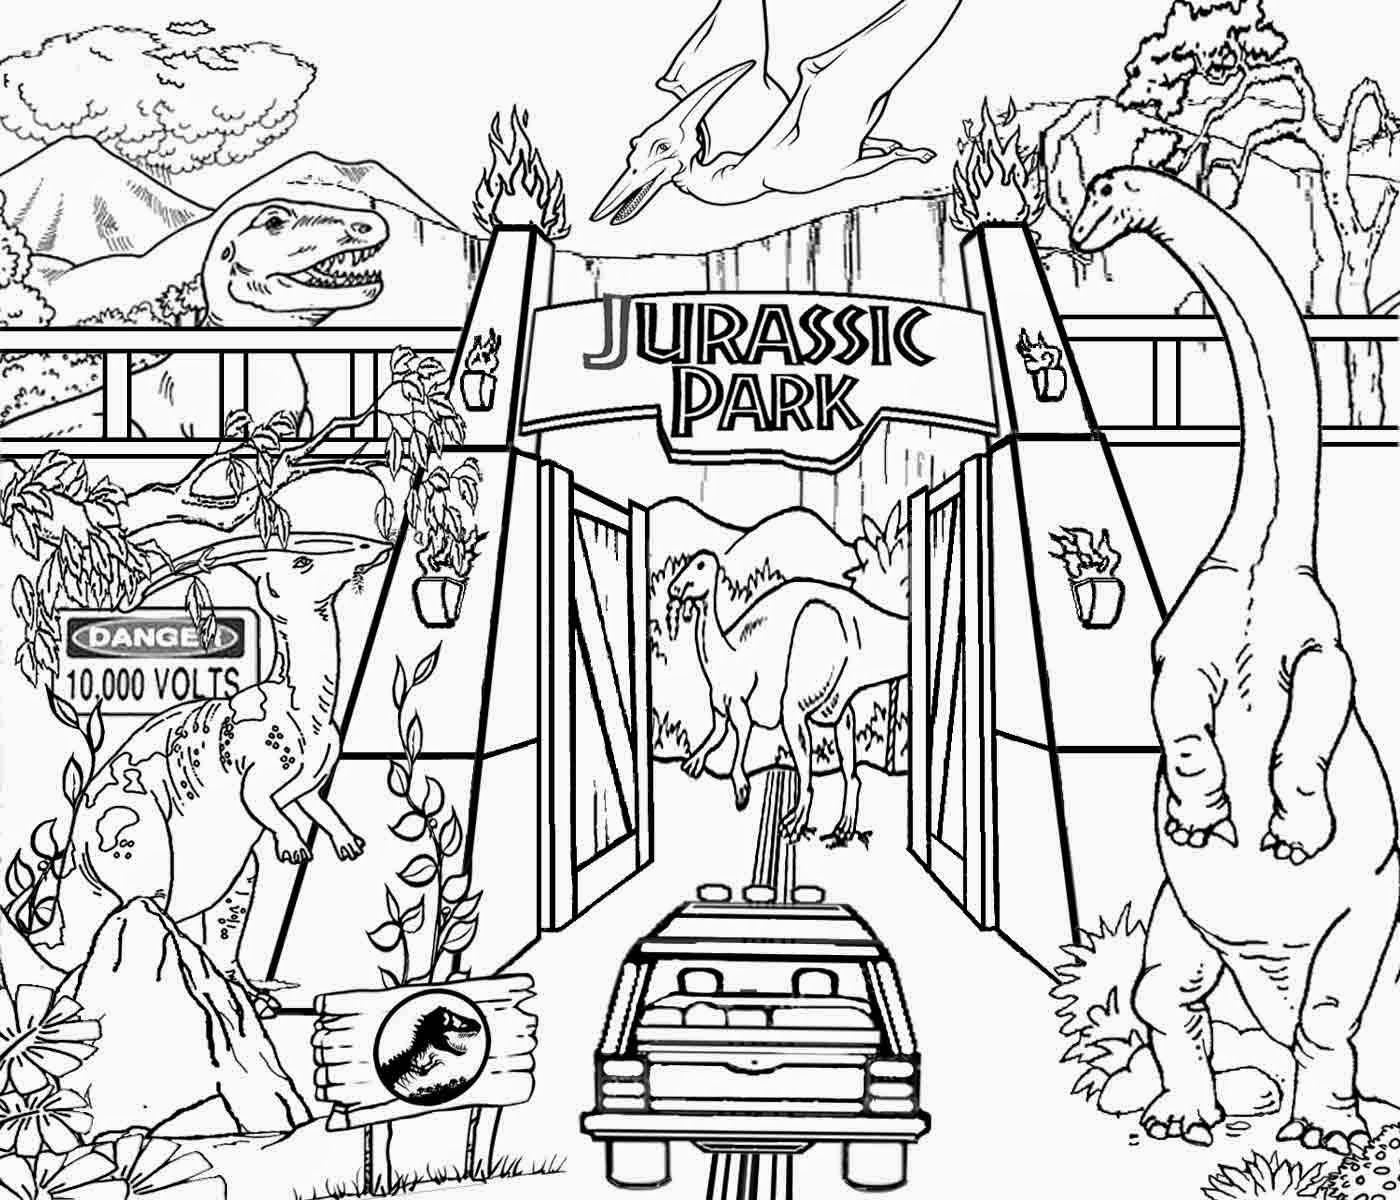 Printable coloring pages dinosaurs - Detailed Printable High Resolution Free Clipart Jurassic Park Dinosaur Coloring Pages For Older Kids